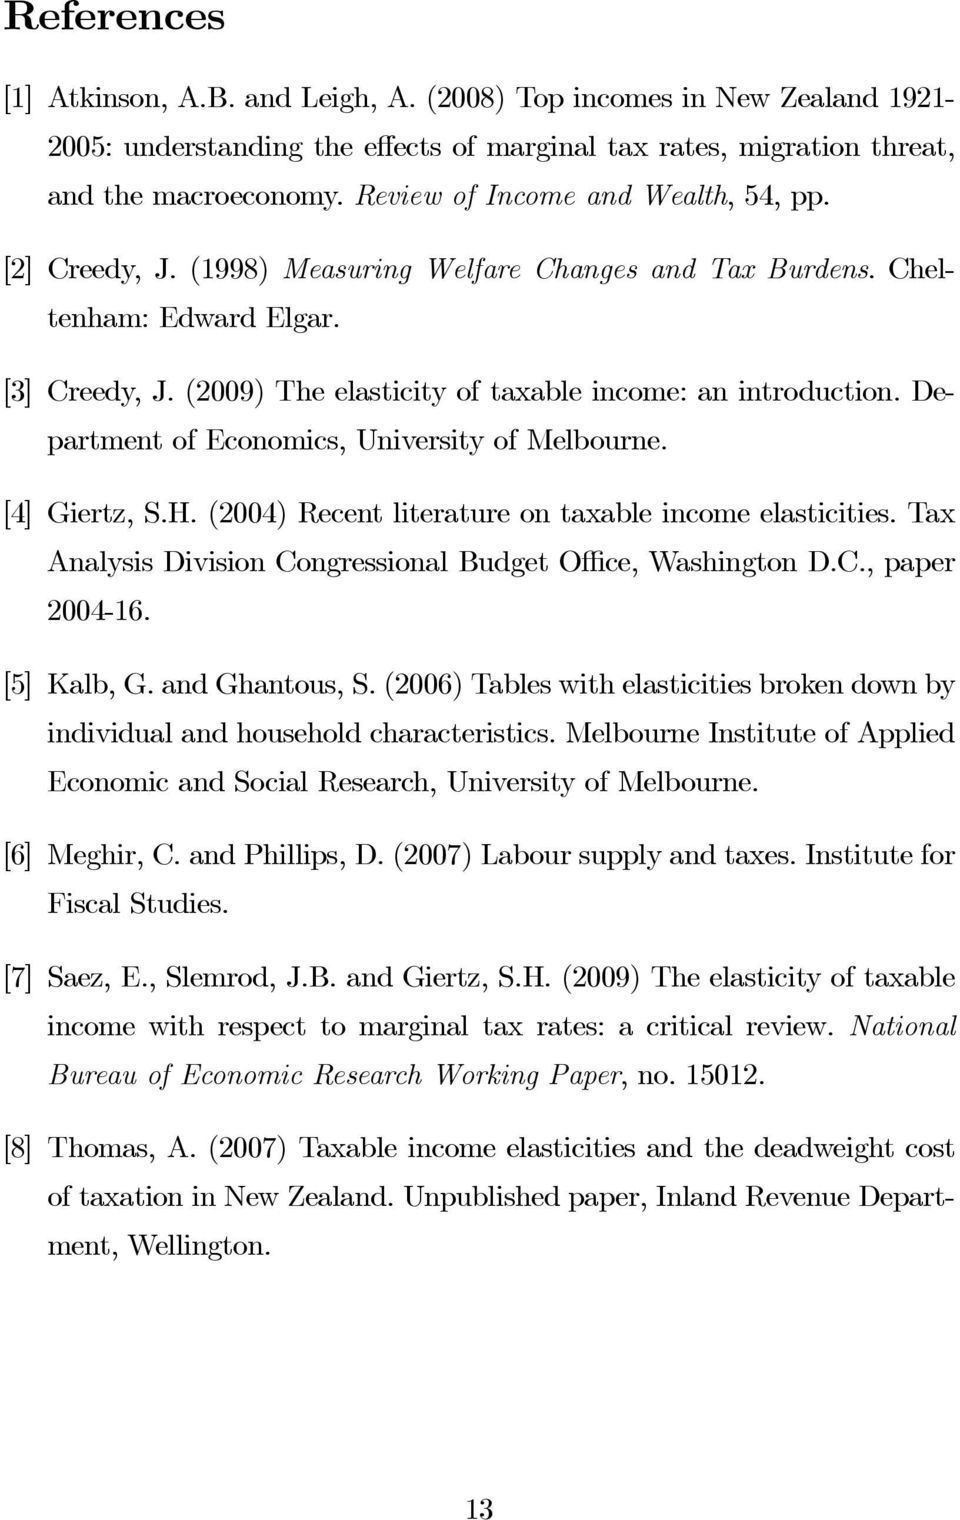 Department of Economics, University of Melbourne. [4] Giertz, S.H. (2004) Recent literature on taxable income elasticities. Tax Analysis Division Congressional Budget Office, Washington D.C., paper 2004-16.